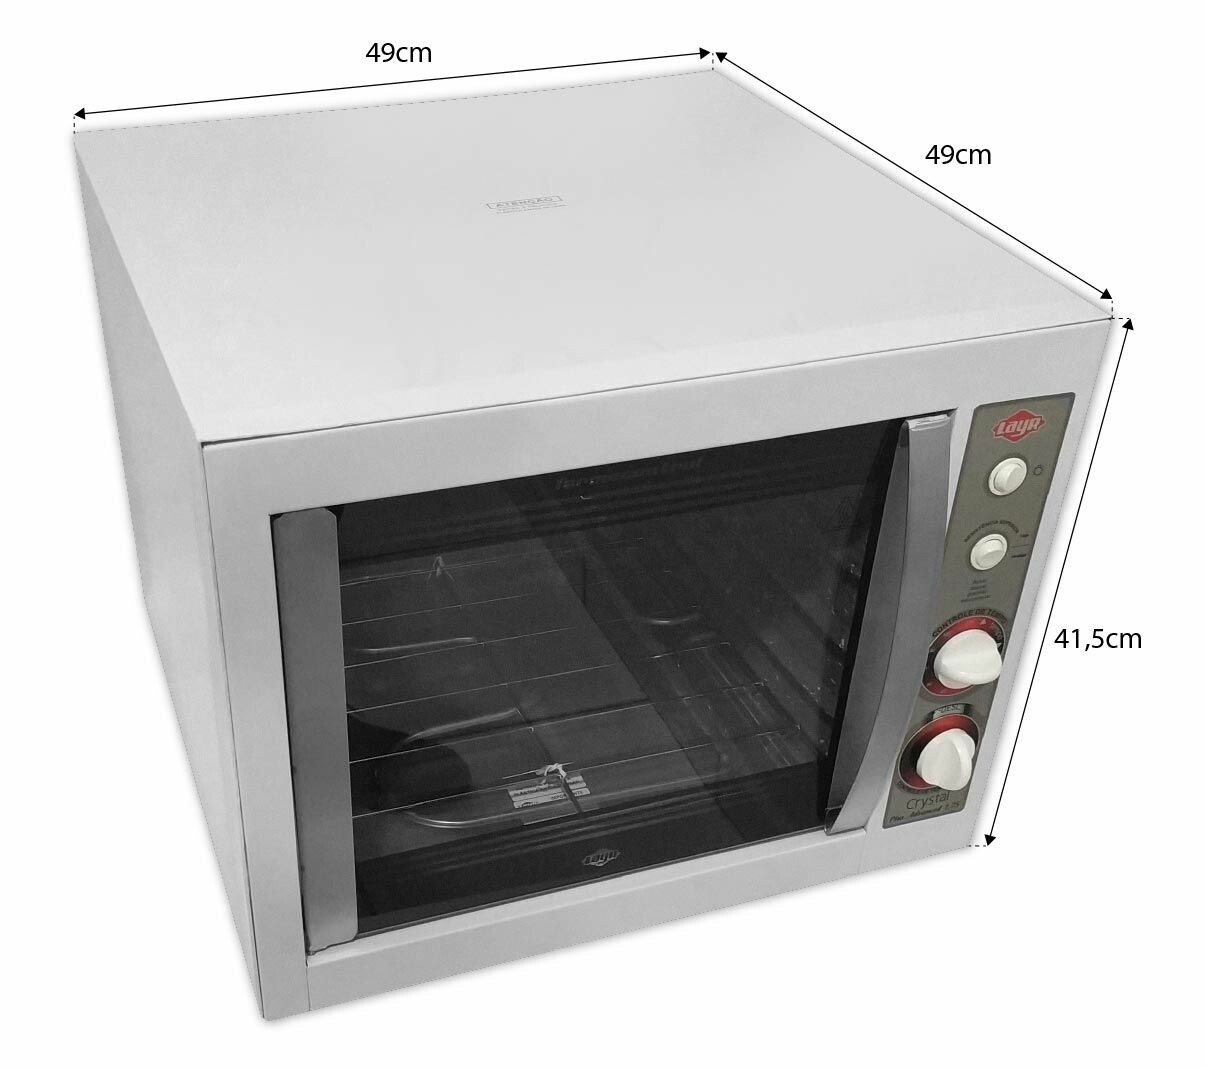 FORNO ELÉTRICO CRYSTAL PLUS ADVANCED 1750W - LAYR - 110V